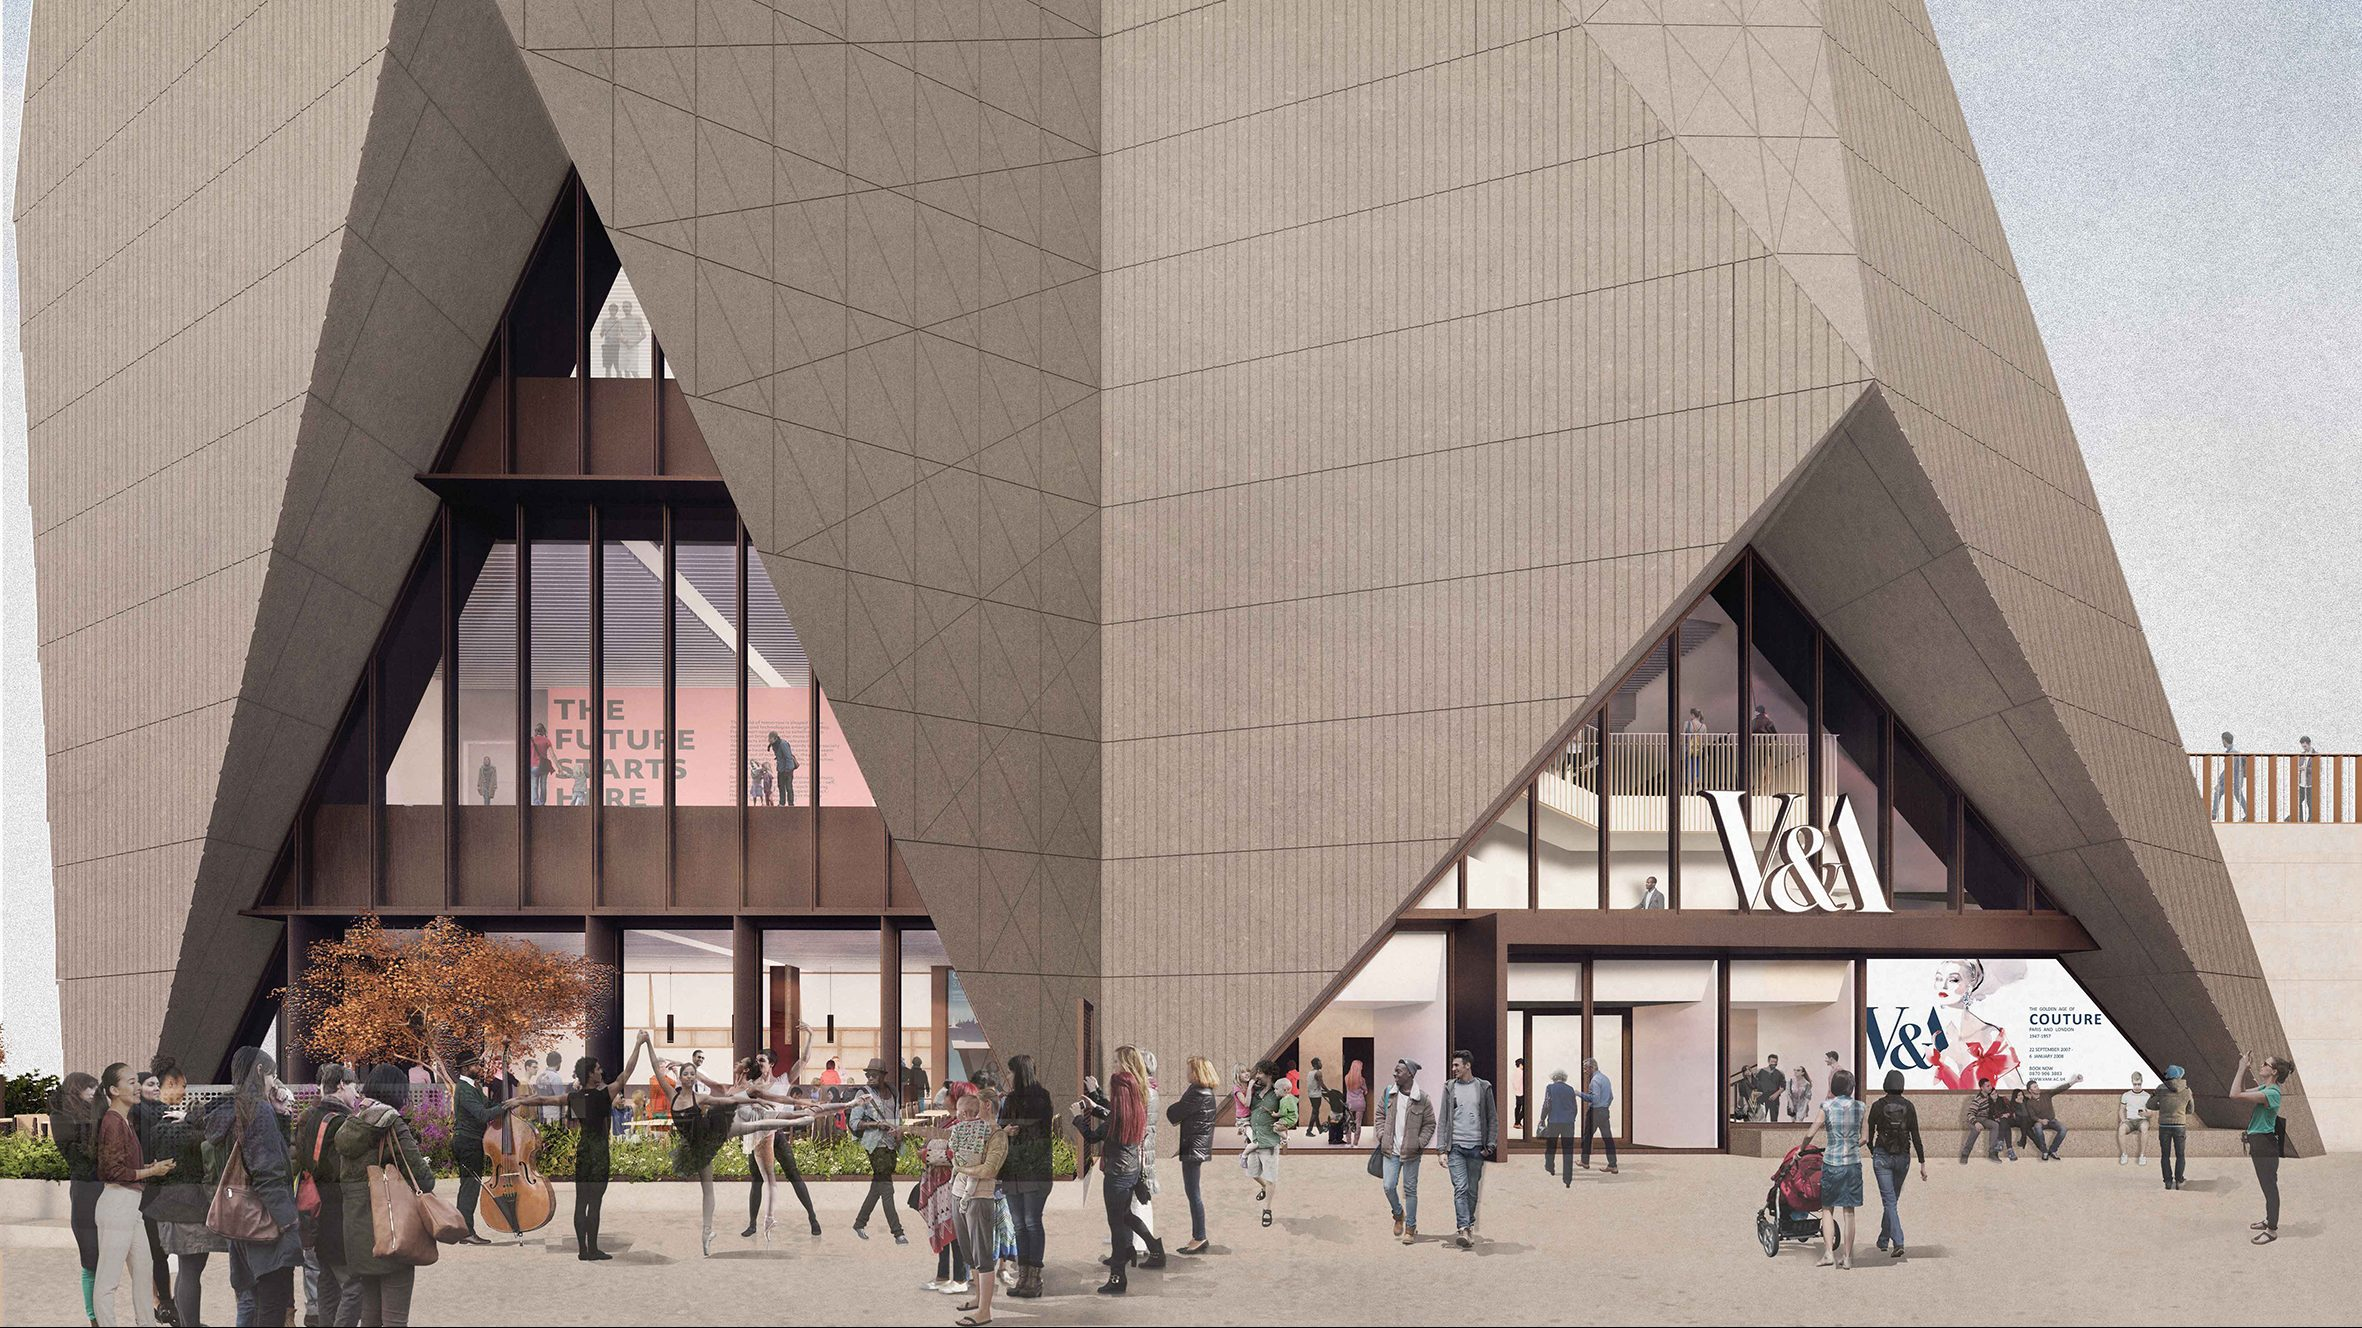 External render view of V&A East Museum